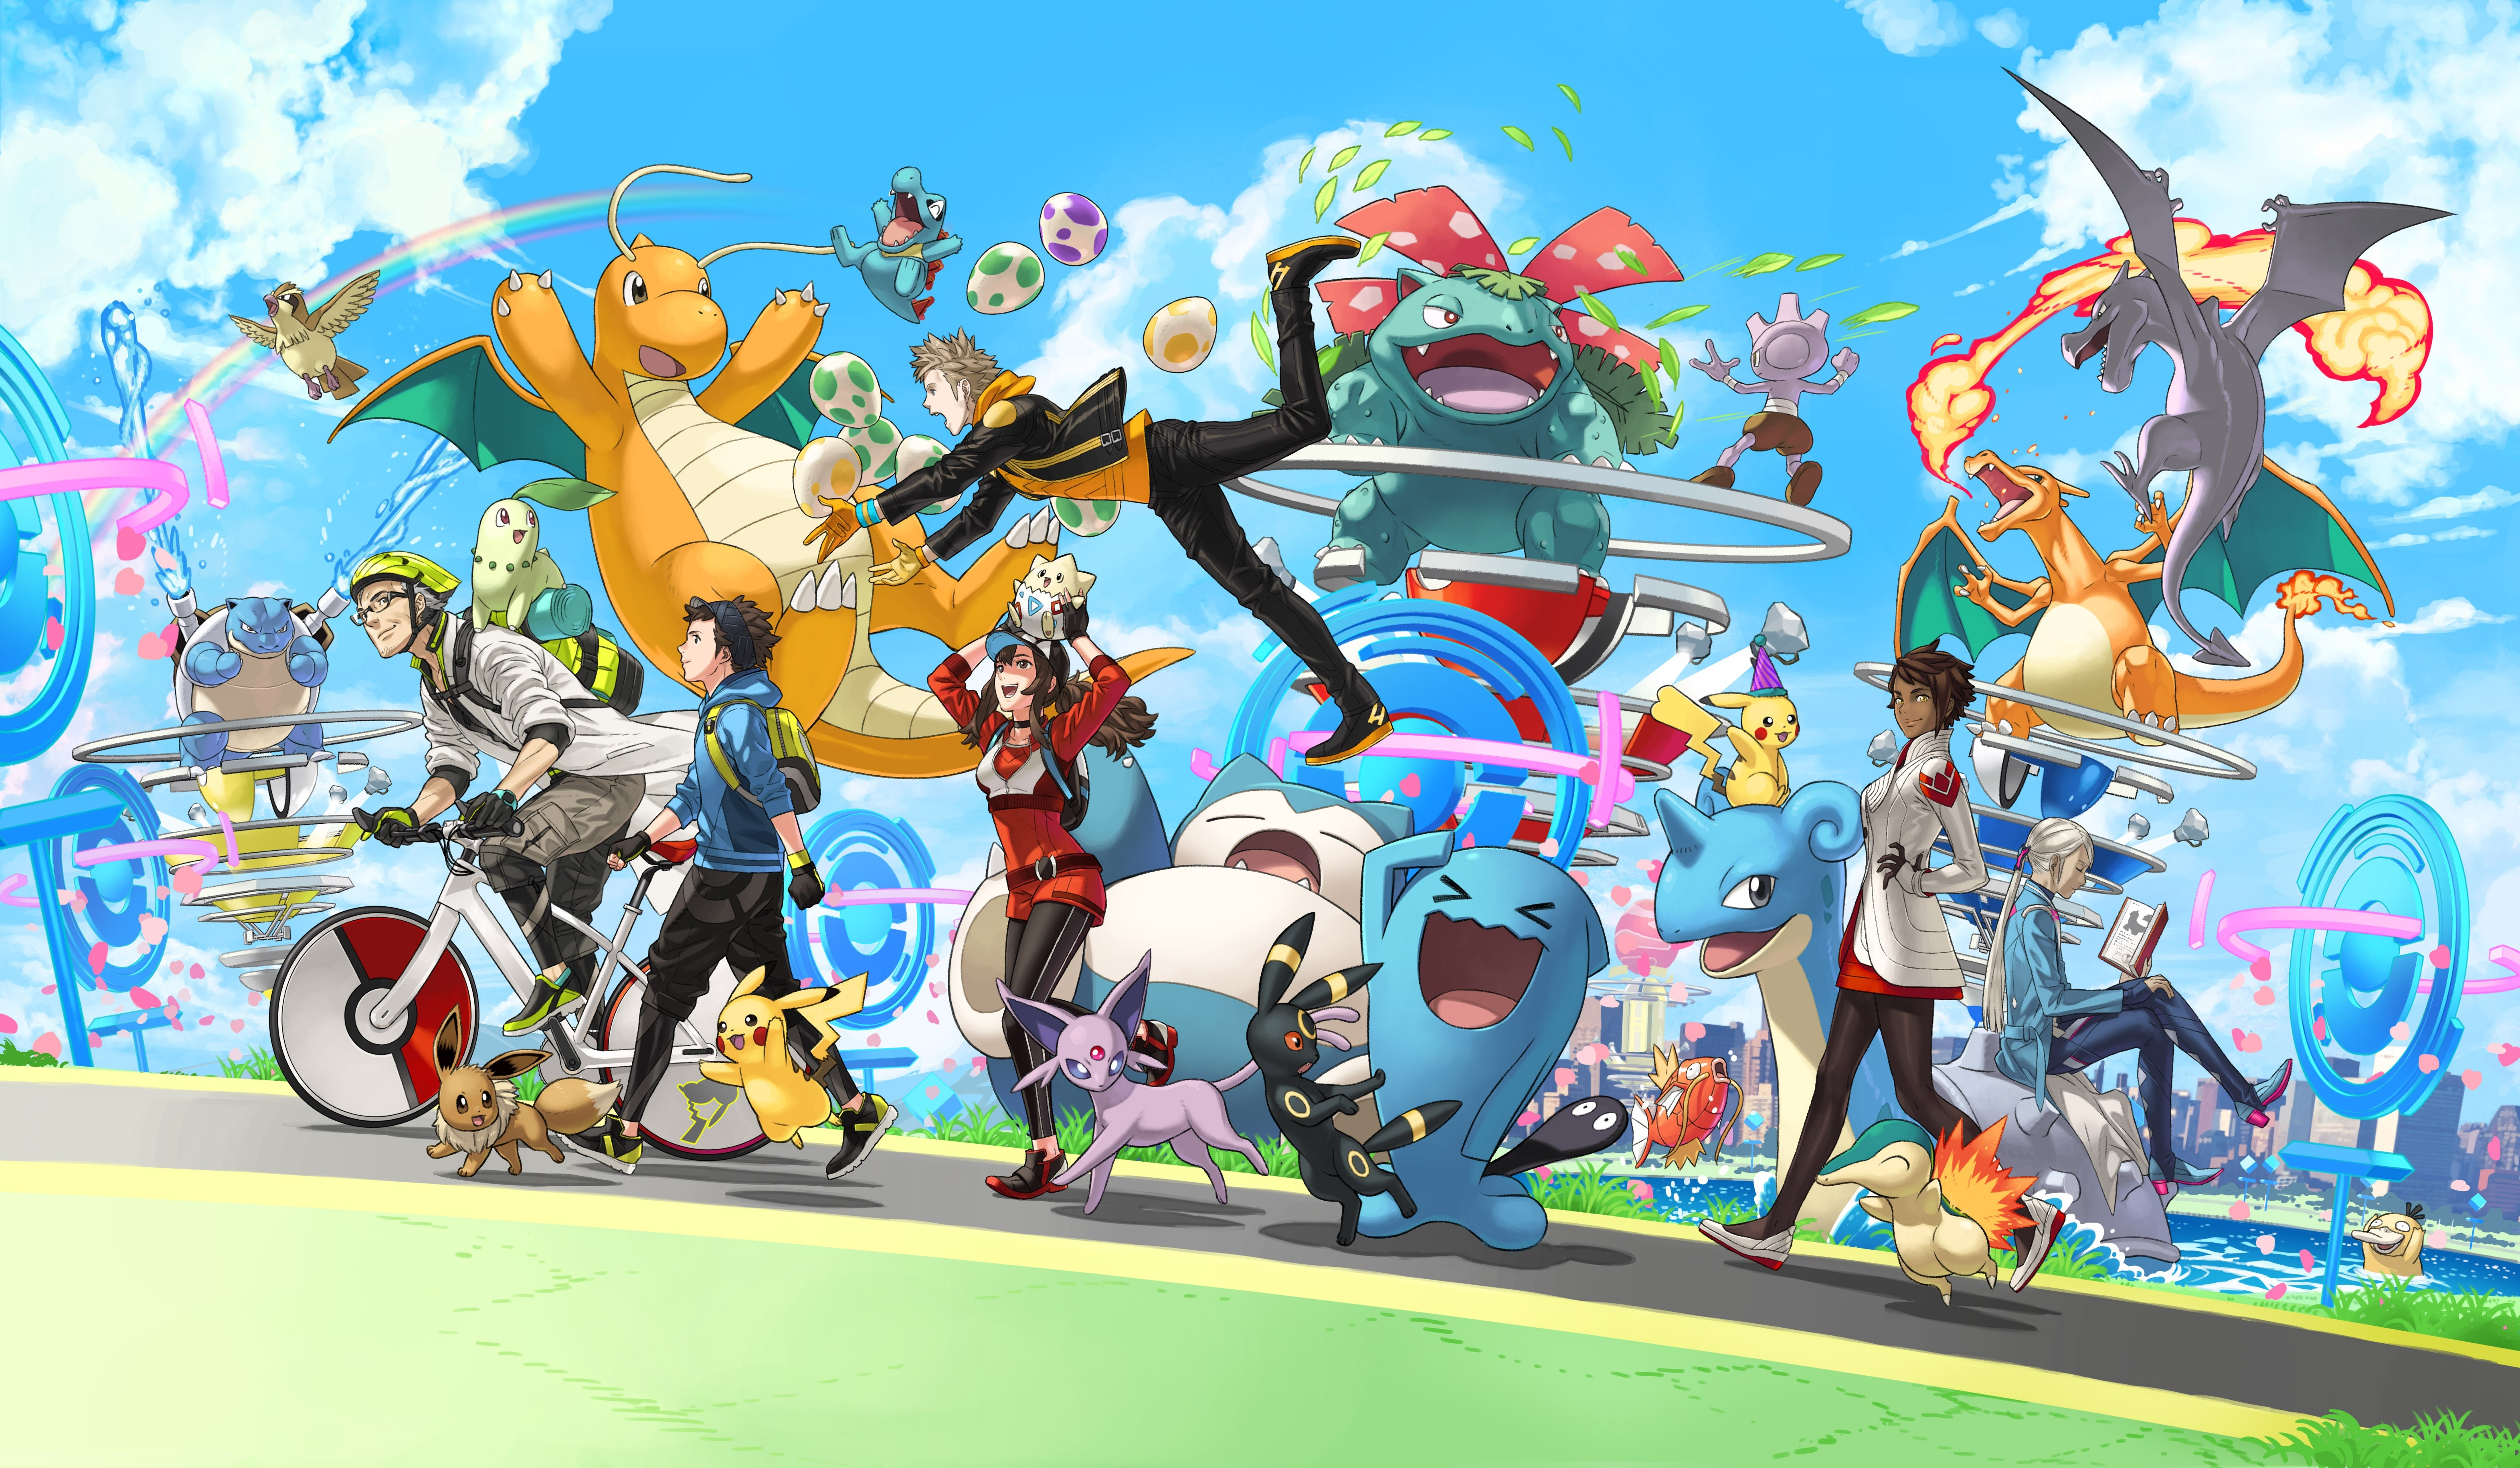 Download 6286x3662 Pokemon Go Characters Anime Games Wallpapers Wallpapermaiden